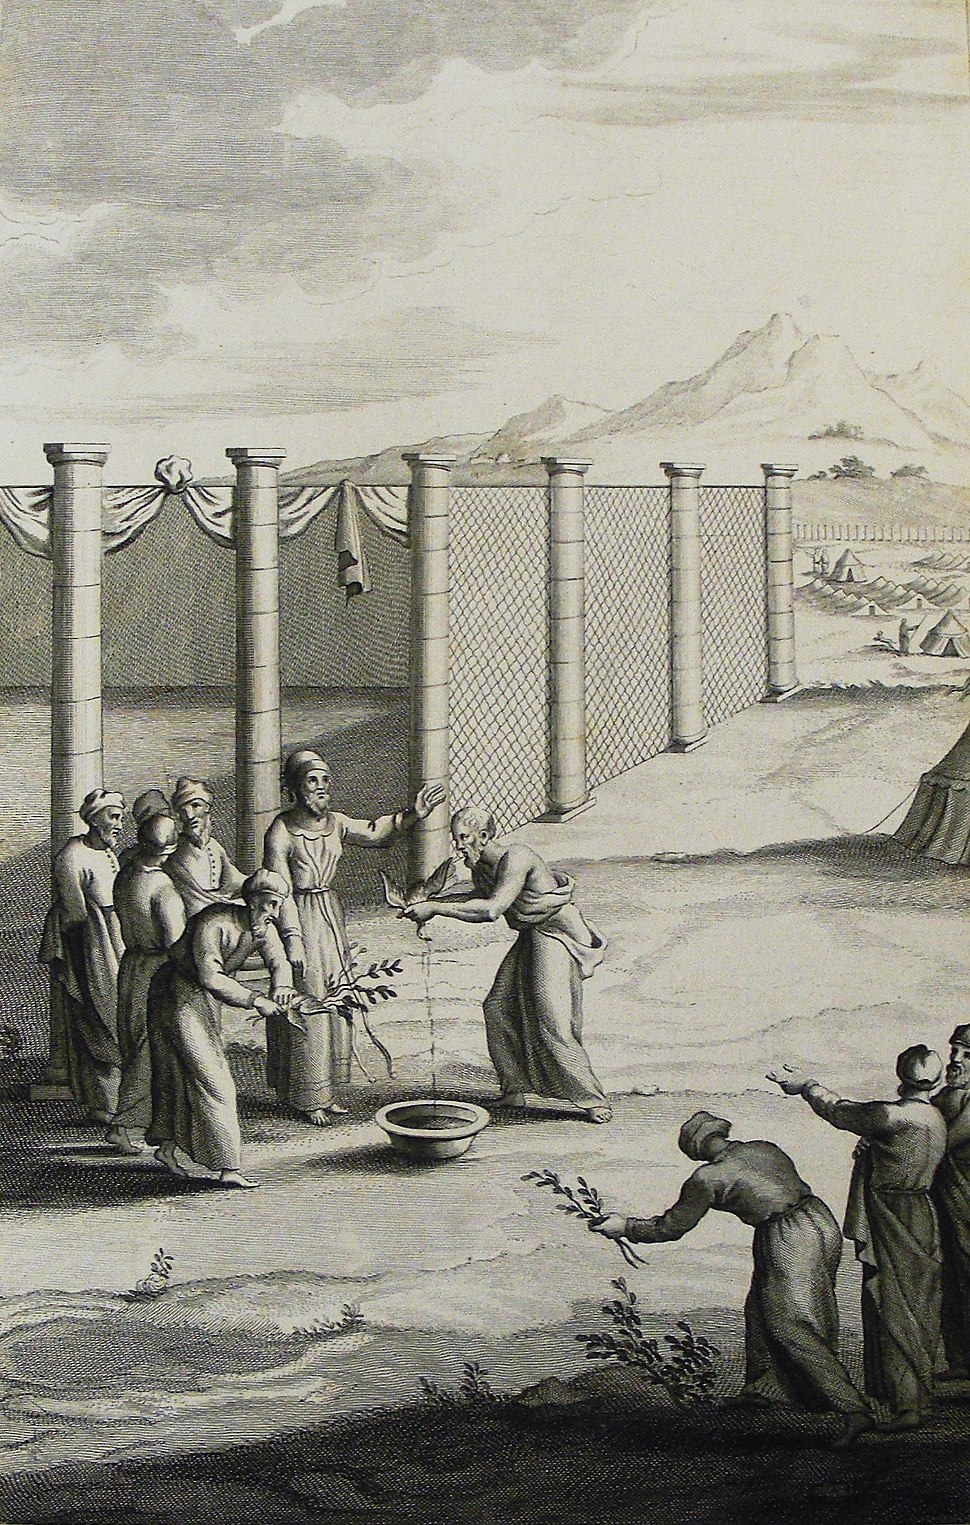 The Phillip Medhurst Picture Torah 543. Cleansing the leper. Leviticus cap 14 vv 4-7. Gunst